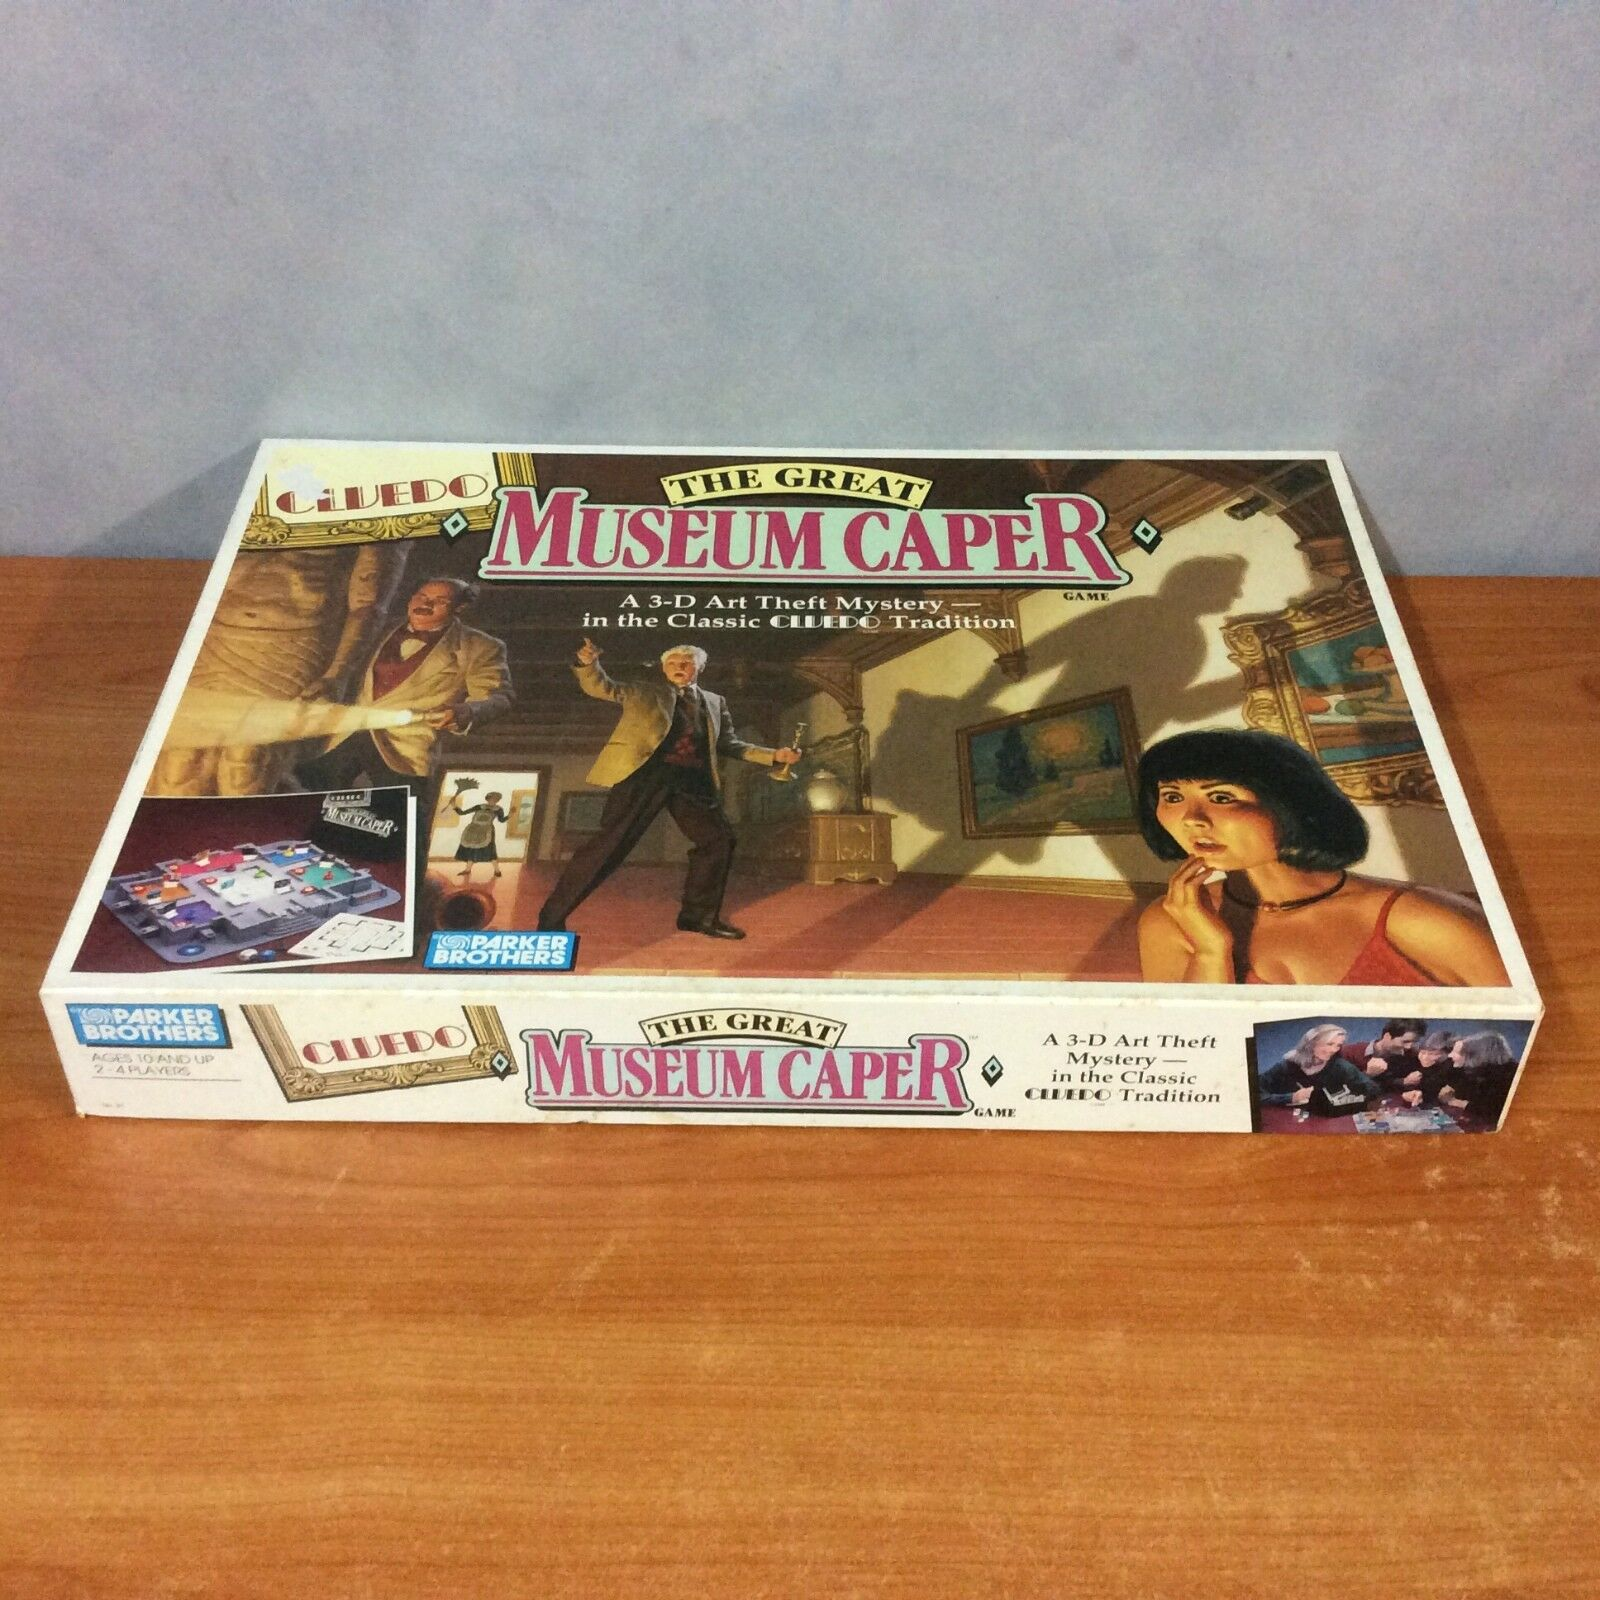 Cluedo The Great Museum Caper BoardGame - A 3D Art Theft Mystery - 100% Complete